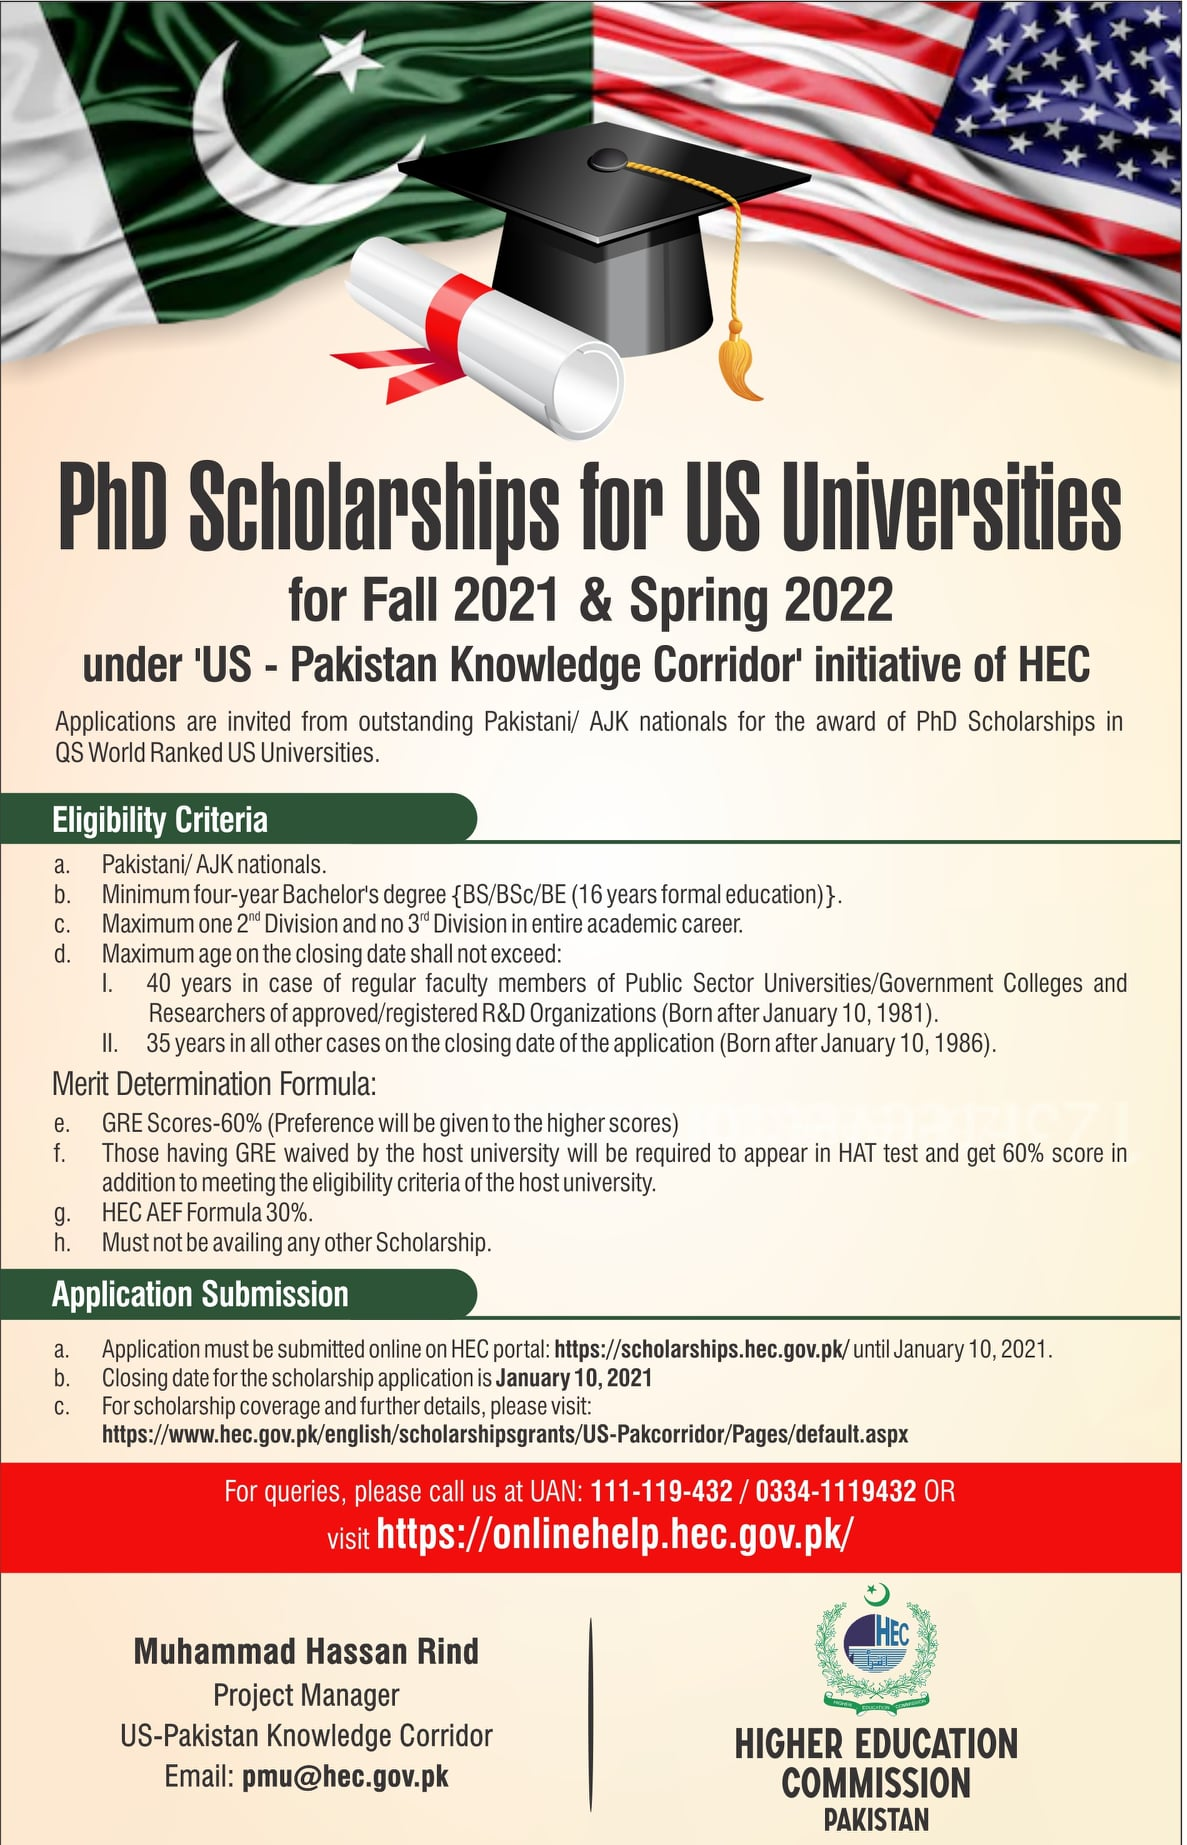 PhD Scholarships for US Universities for Fall 2021 & Spring 2022